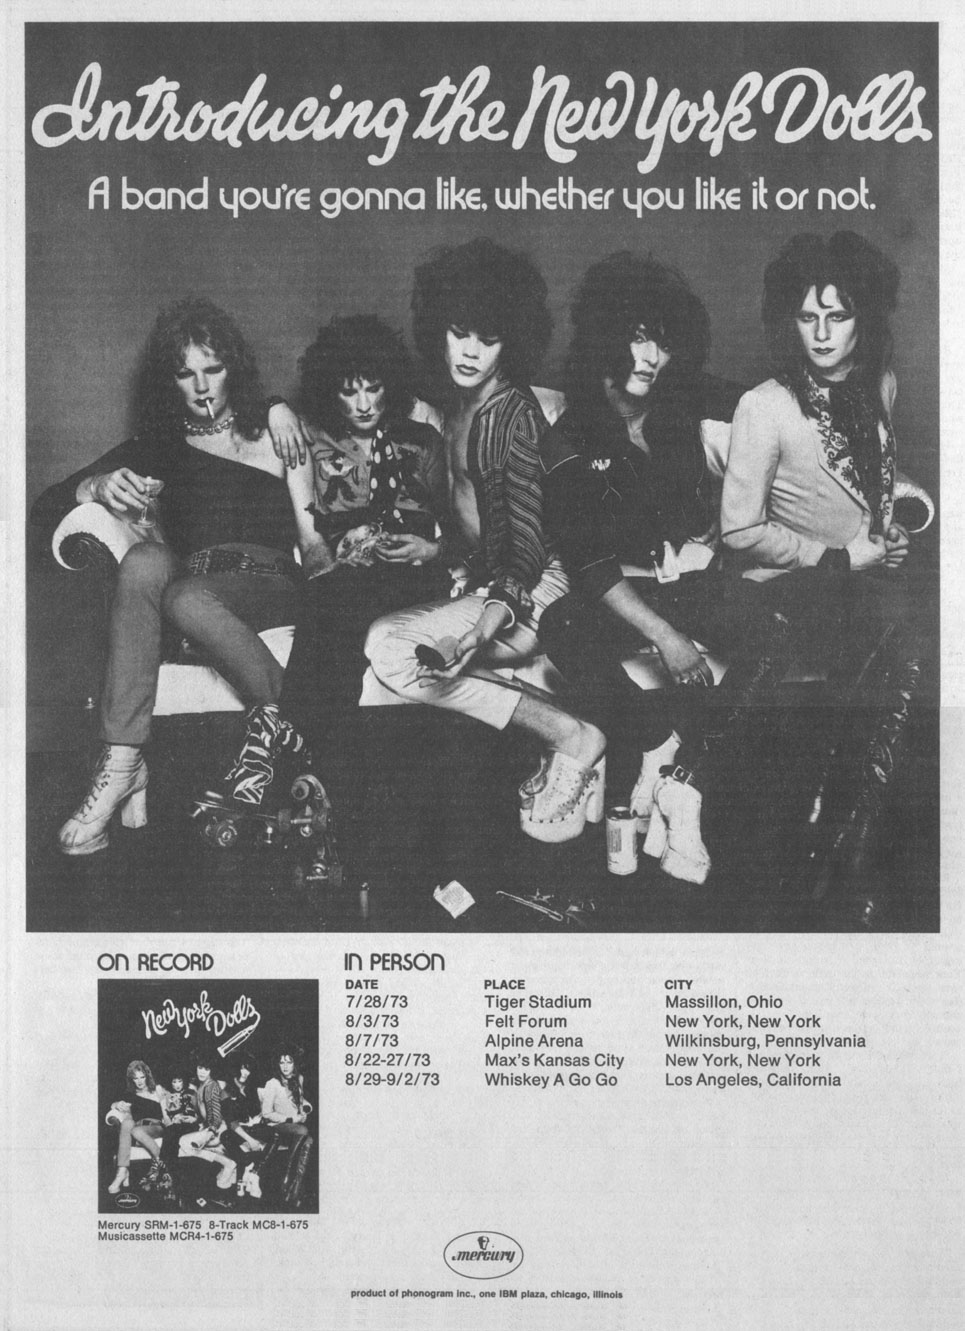 New York Dolls: A band you're gonna like, whether you like it or not